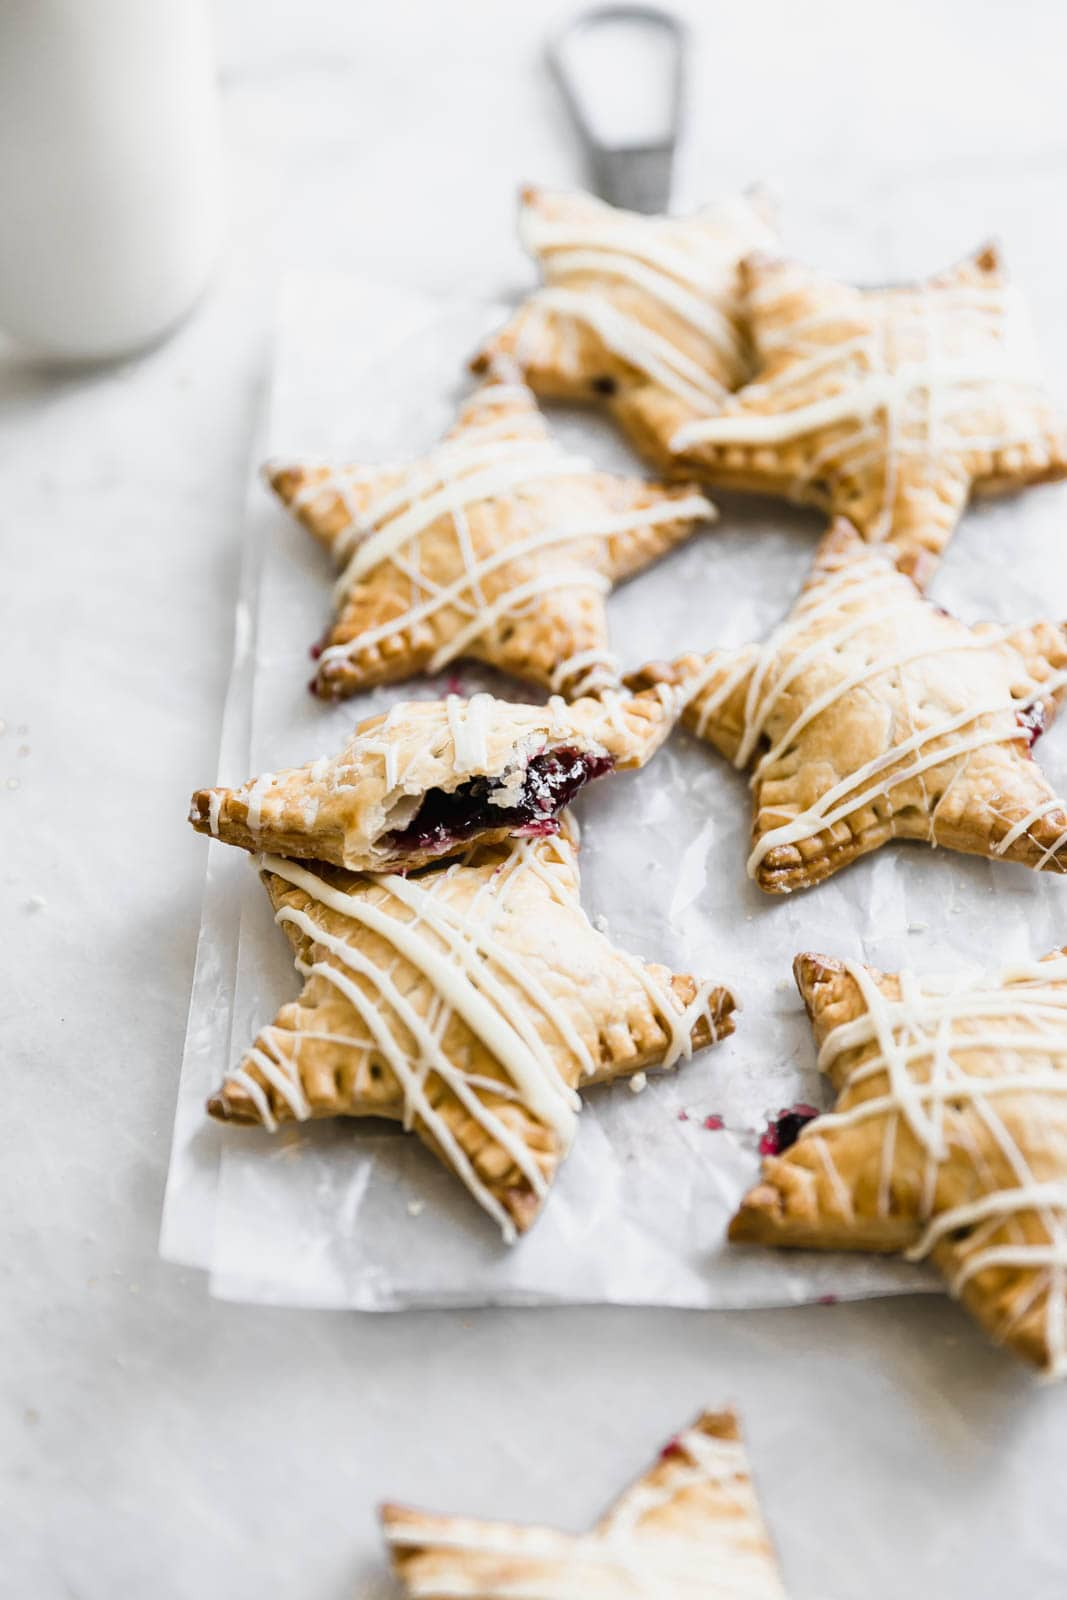 Sometimes, you just want pie. And some of those sometimes, you want pie that fits in your hand. Enter: these White Chocolate Blueberry Star Shaped Hand Pies